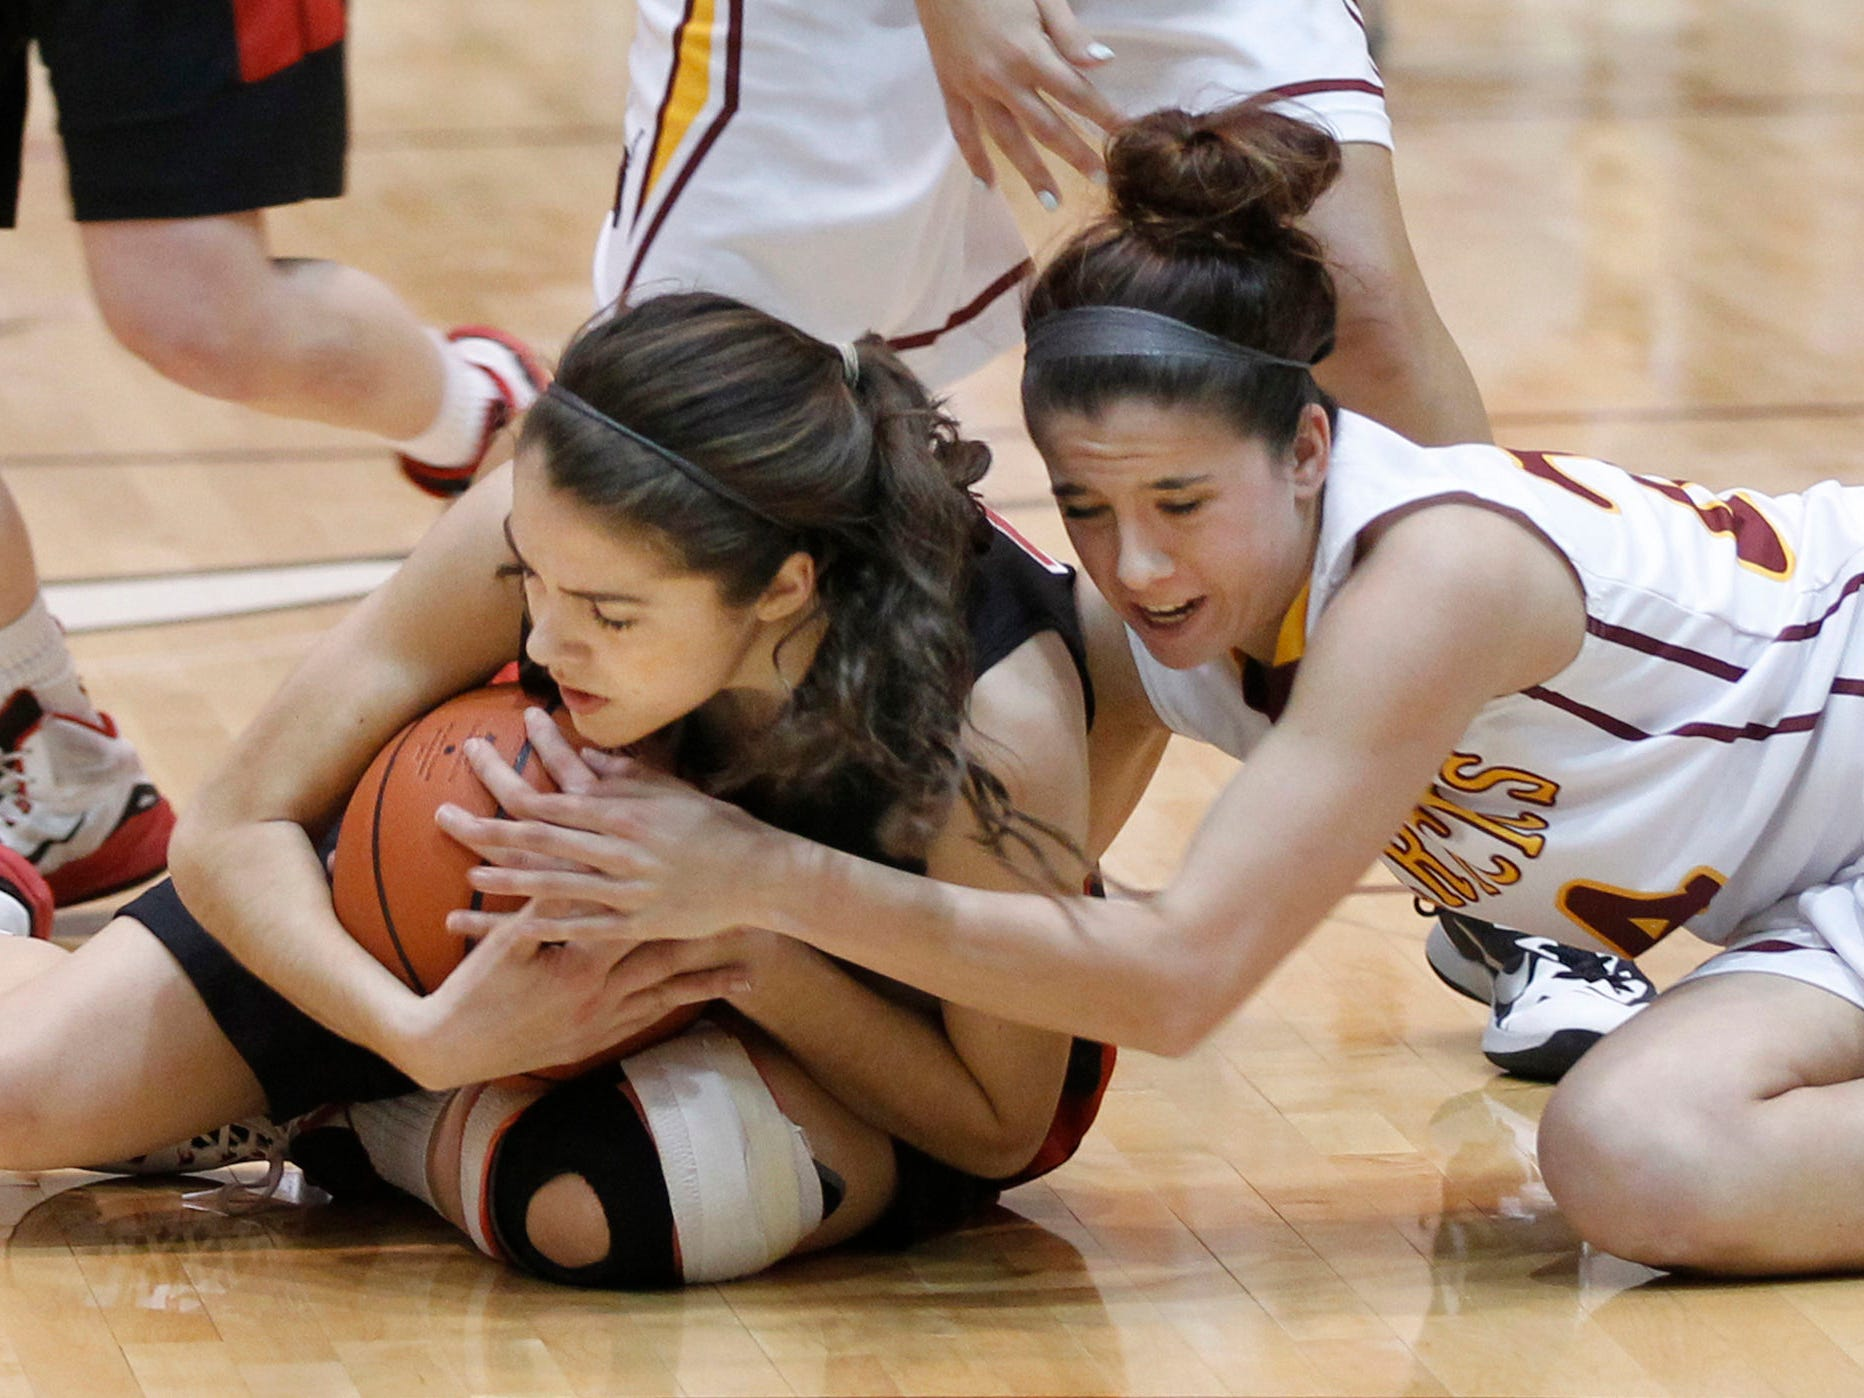 Allie Eavey, left, of Lafayette Jeff and McCutcheon's Kerstyn Lowery wrestle for control of the ball in girls sectional basketball action Friday, February 13, 2015, at McCutcheon High School. McCutcheon defeated Lafayette Jeff 43-33.